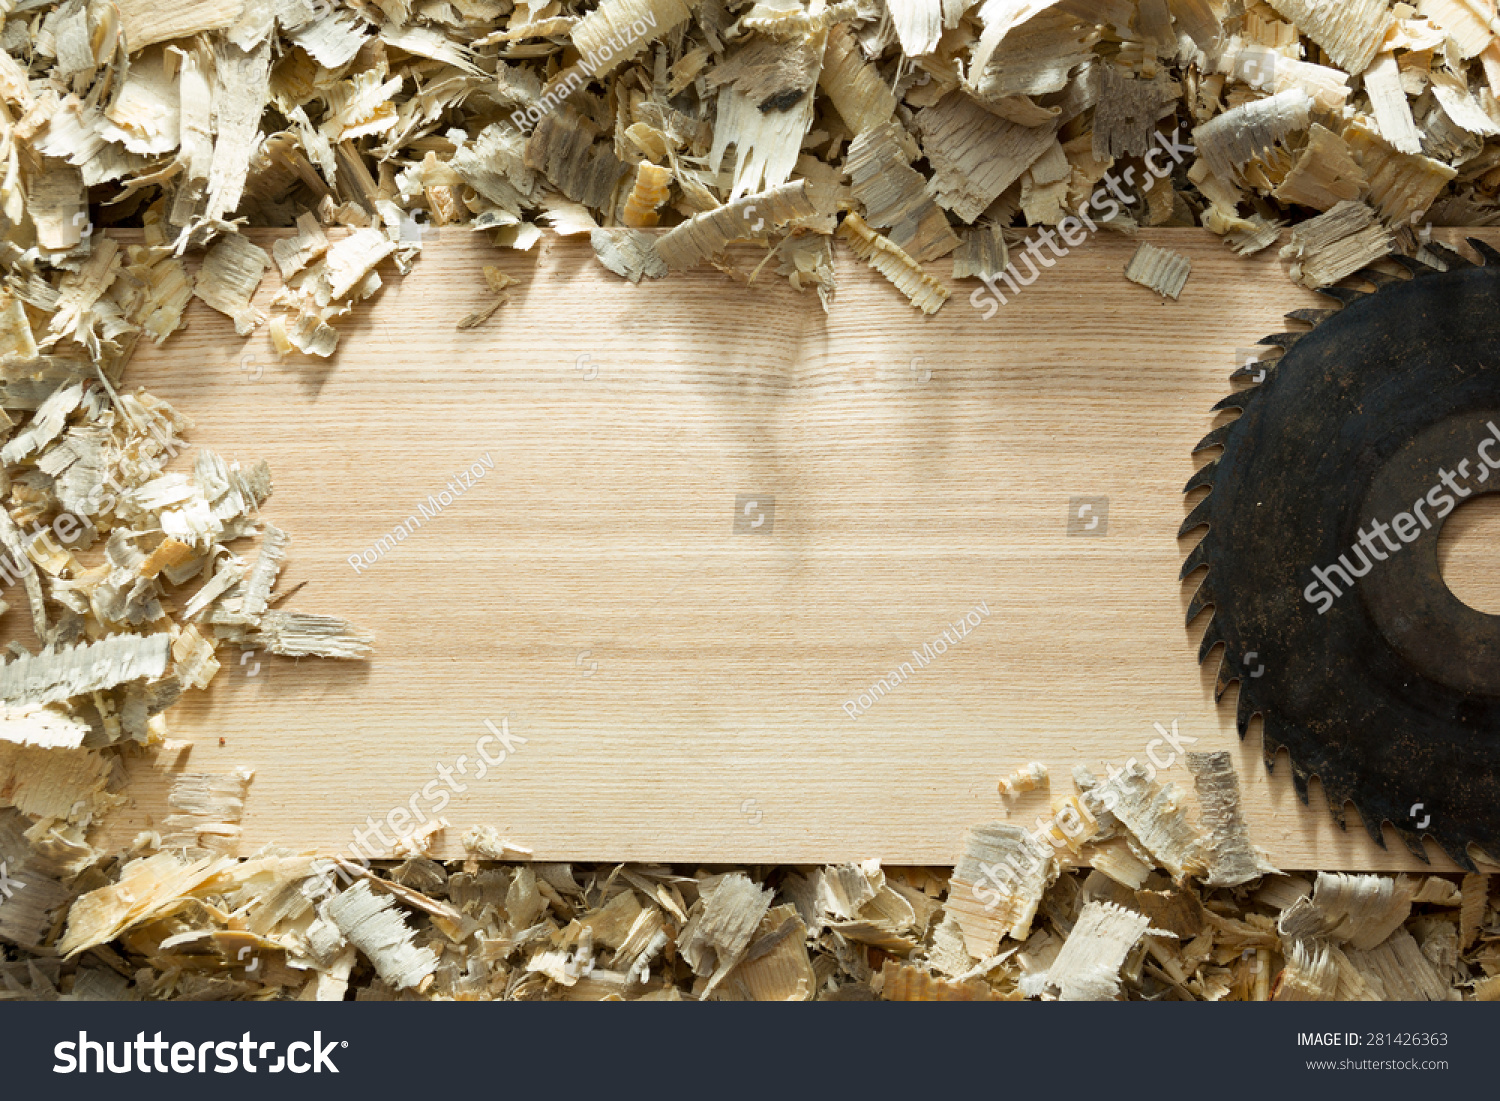 Carpenter tools on wooden table with sawdust